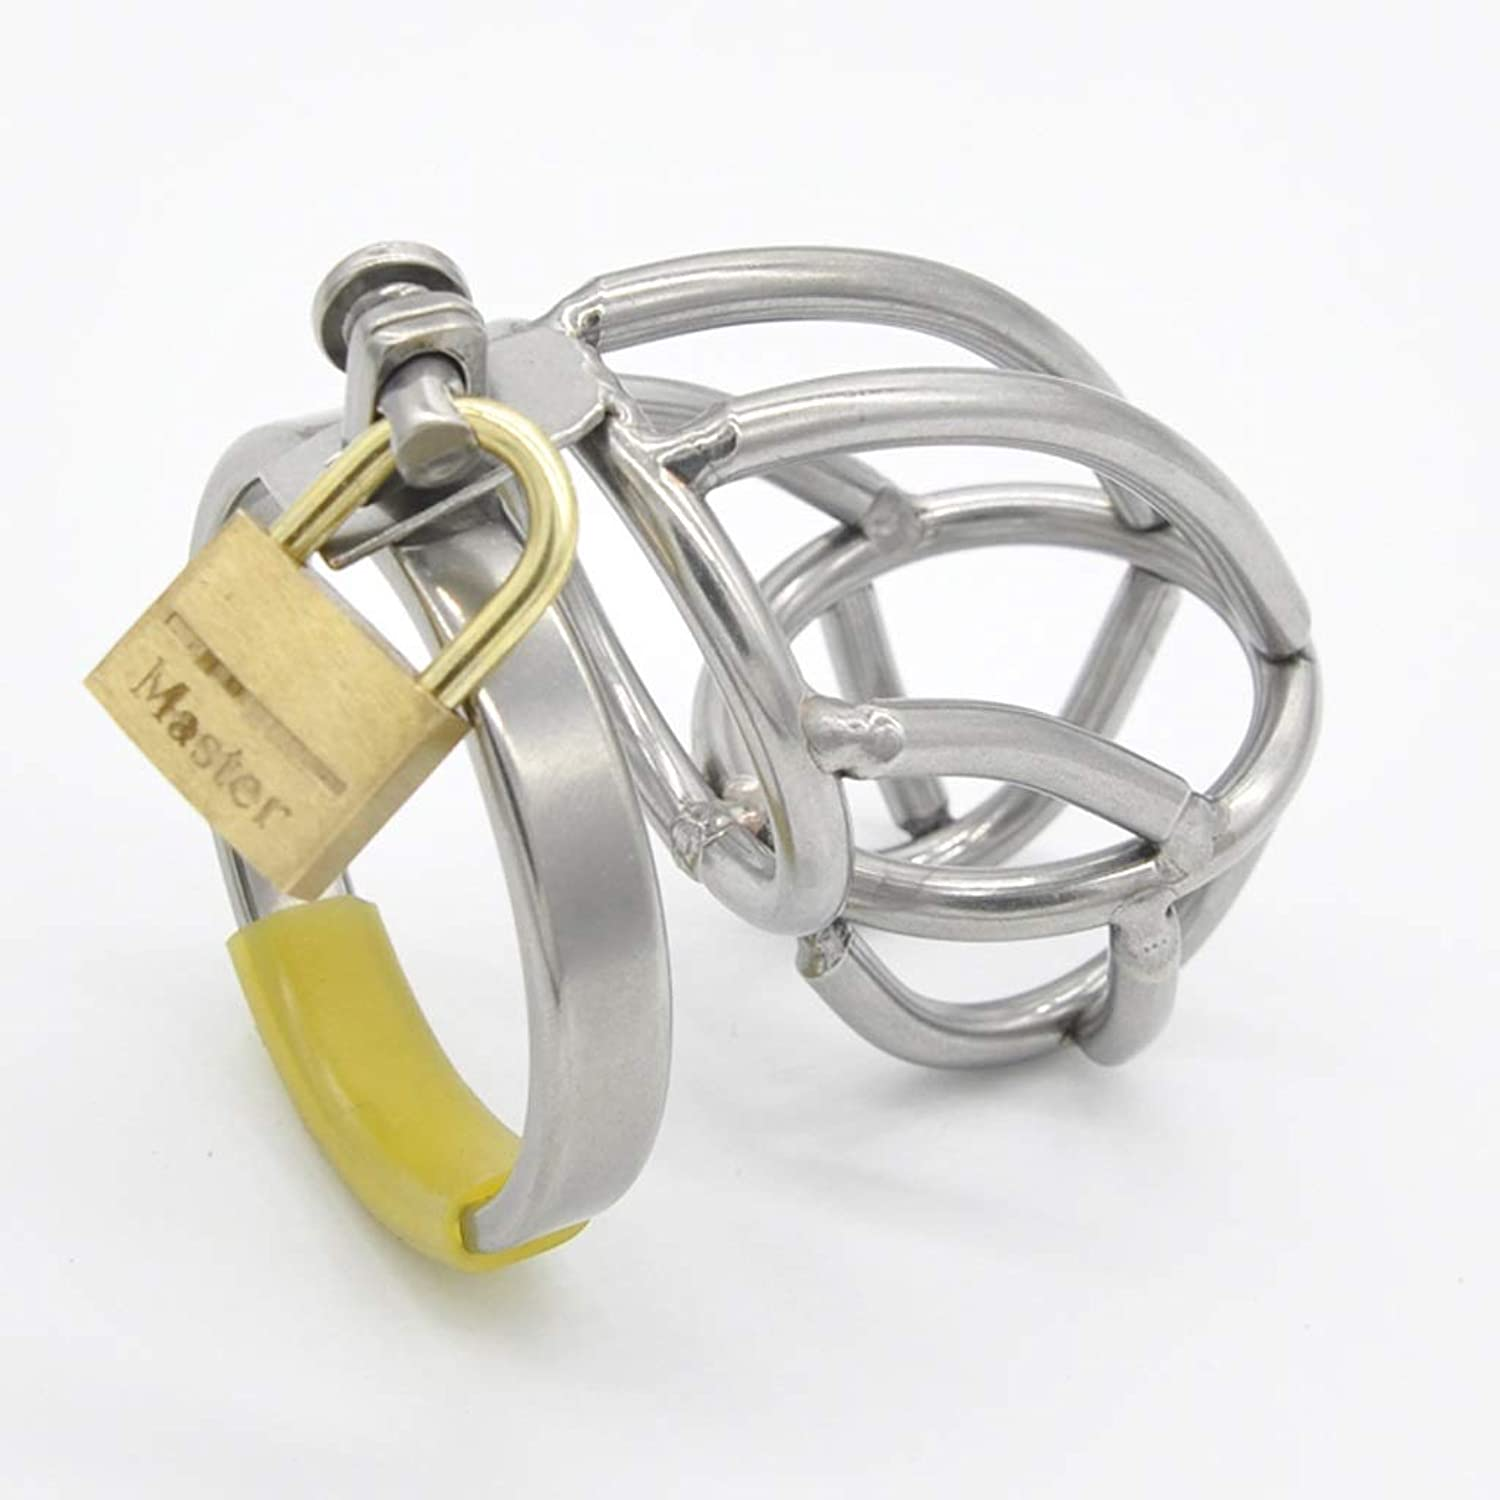 SLH Men's Stainless Steel Enamel Metal Chastity Device with Catheter Erectile Penis Lock Penis Lock Sēx Foreplay Flirting Māssage Stimulation Cage